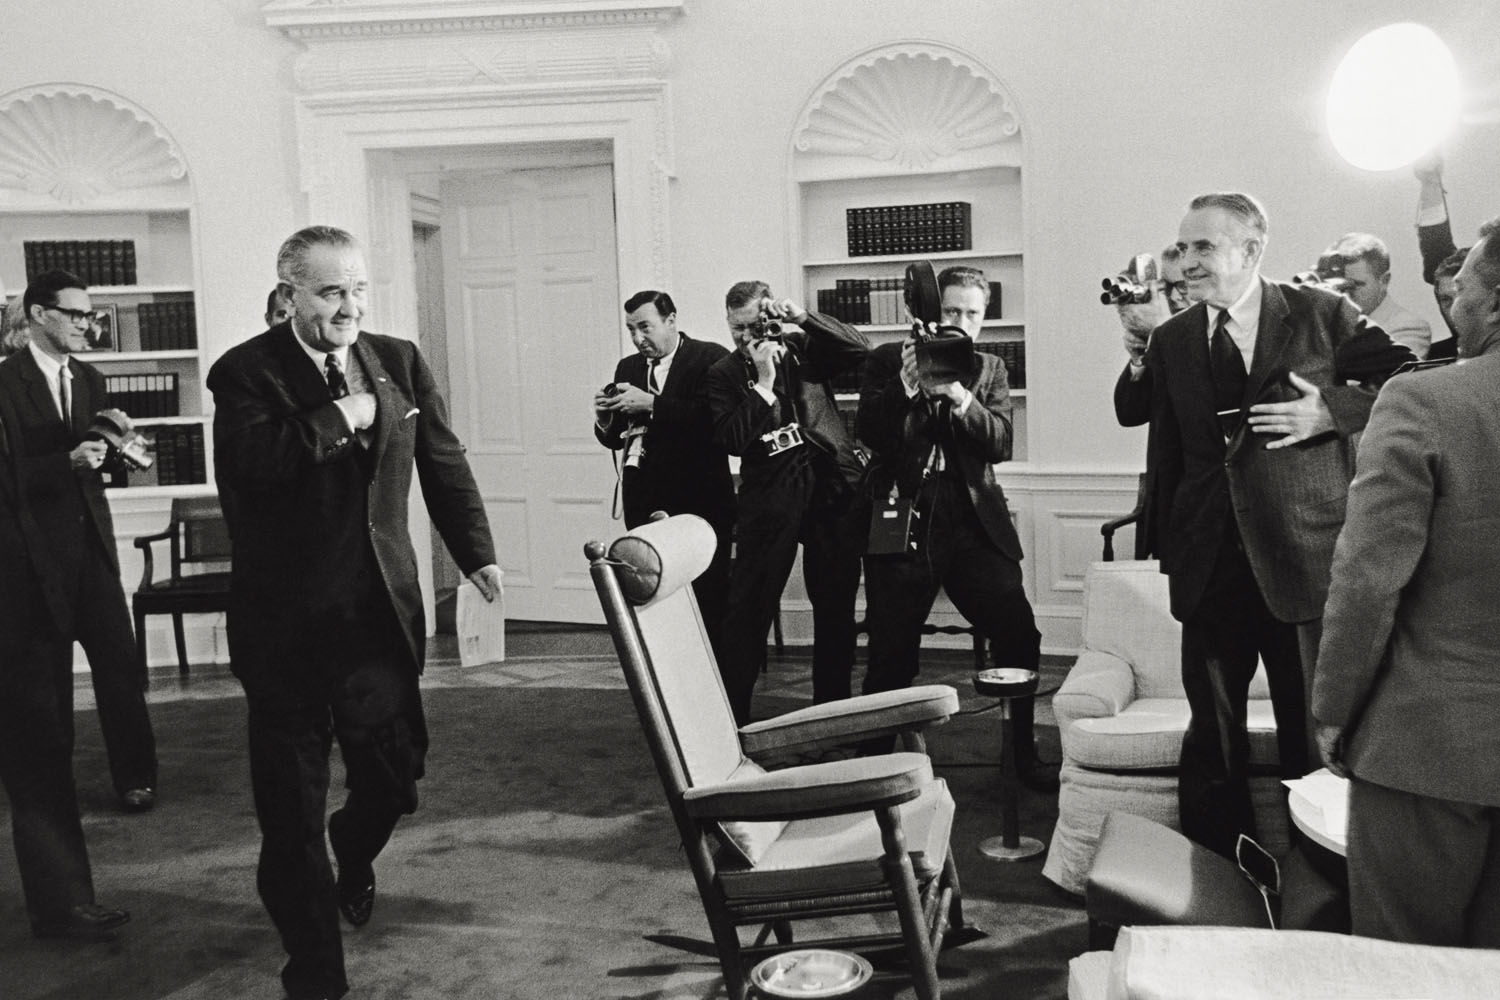 President Johnson is photographed during a meeting with Under Secretary of State William Averell Harriman in the White House.